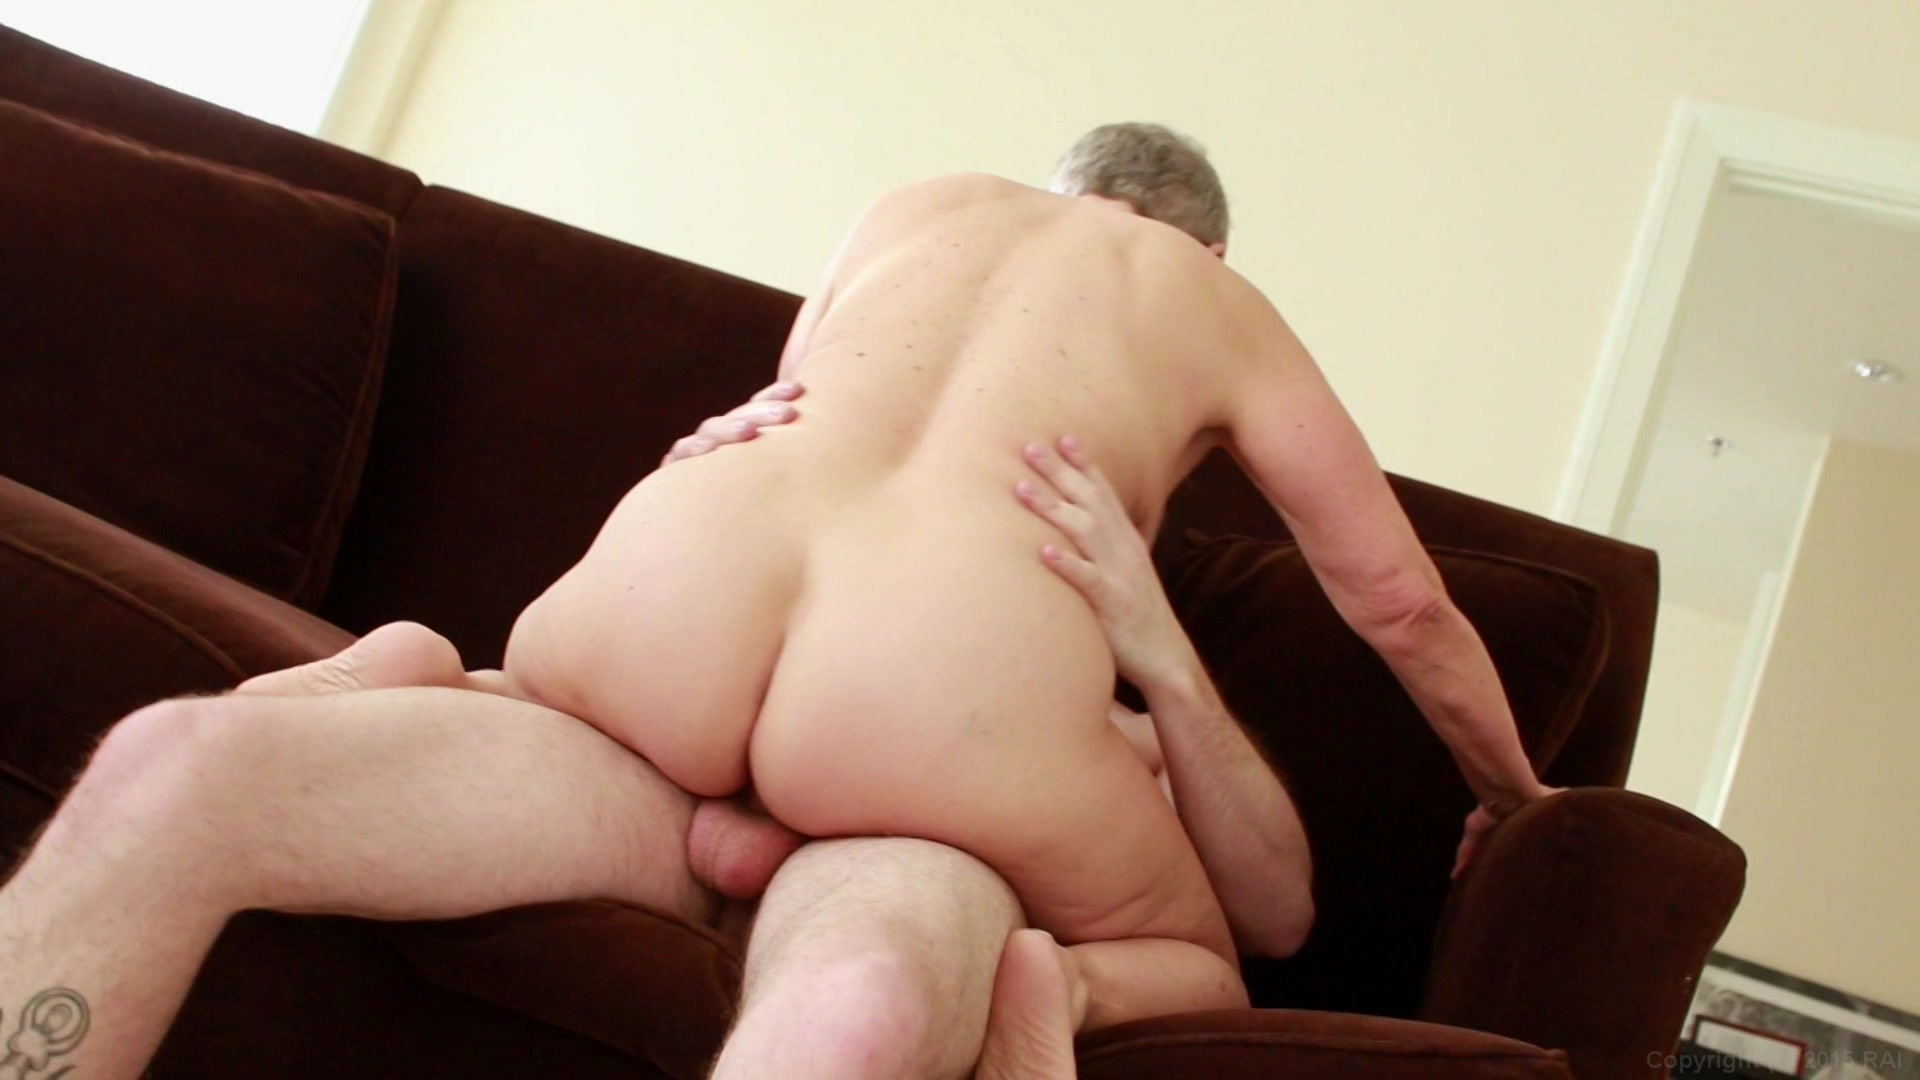 old-lady-getting-fuckin-young-guys